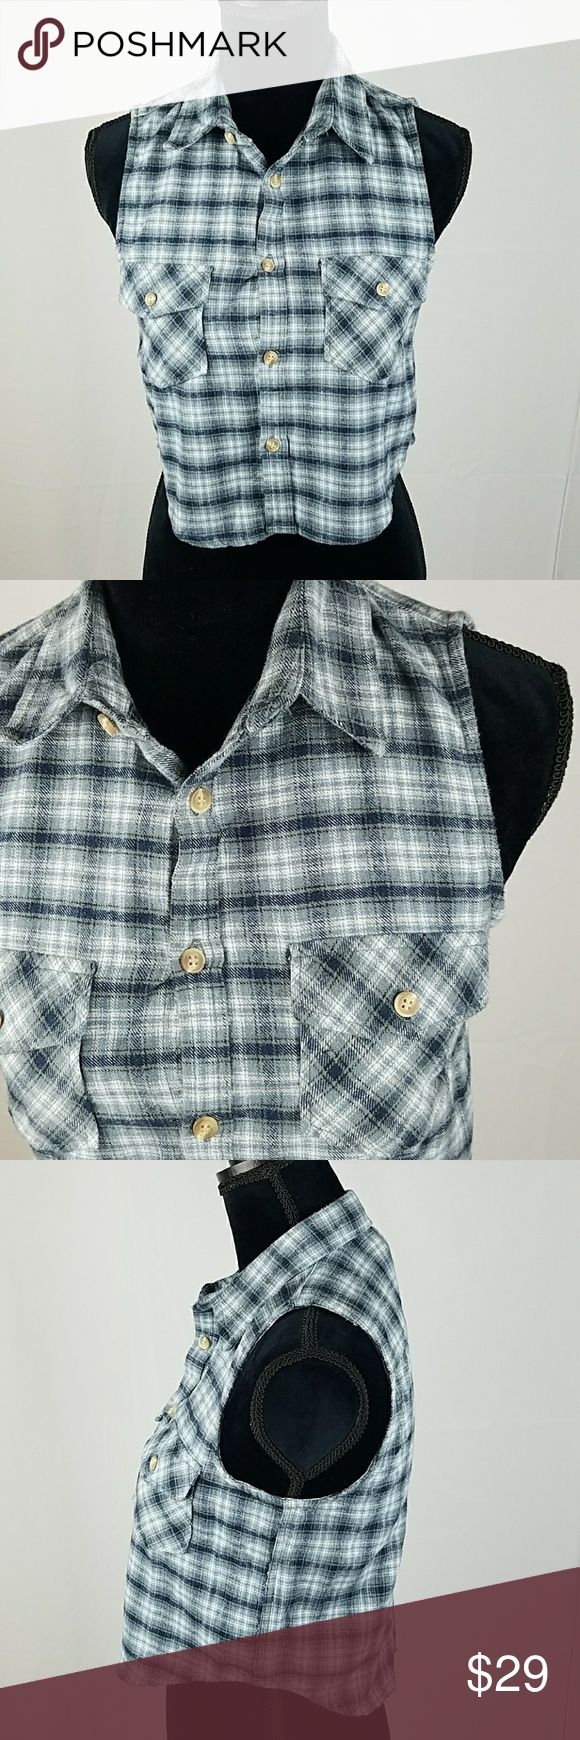 "Brandy Melville women crop plaid flannel Brandy Melville women crop plaid flannel button down vest sleeveless top.  Under arm to under arm: 17.5"" Length: 20"" Brandy Melville Tops Crop Tops"